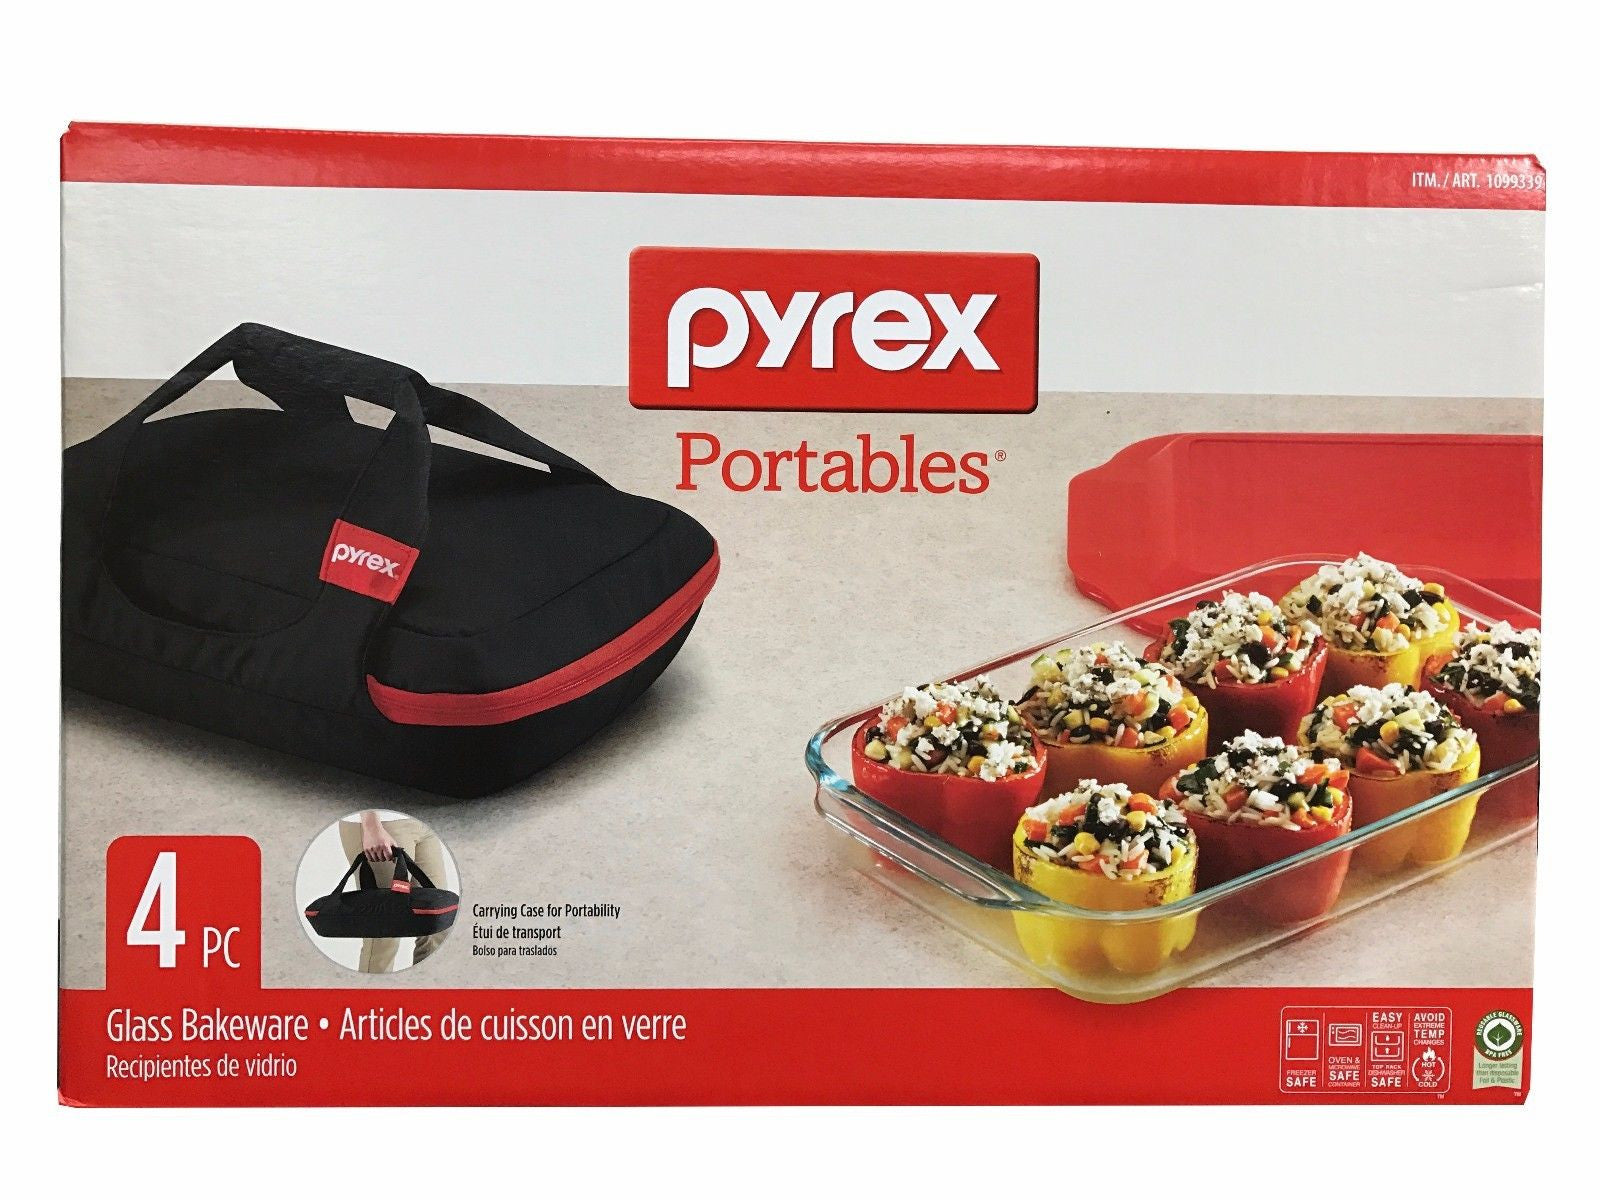 Pyrex Portables 4 PC Glass Bakeware Set with Insulated Carrier + Cold/Hot Pack